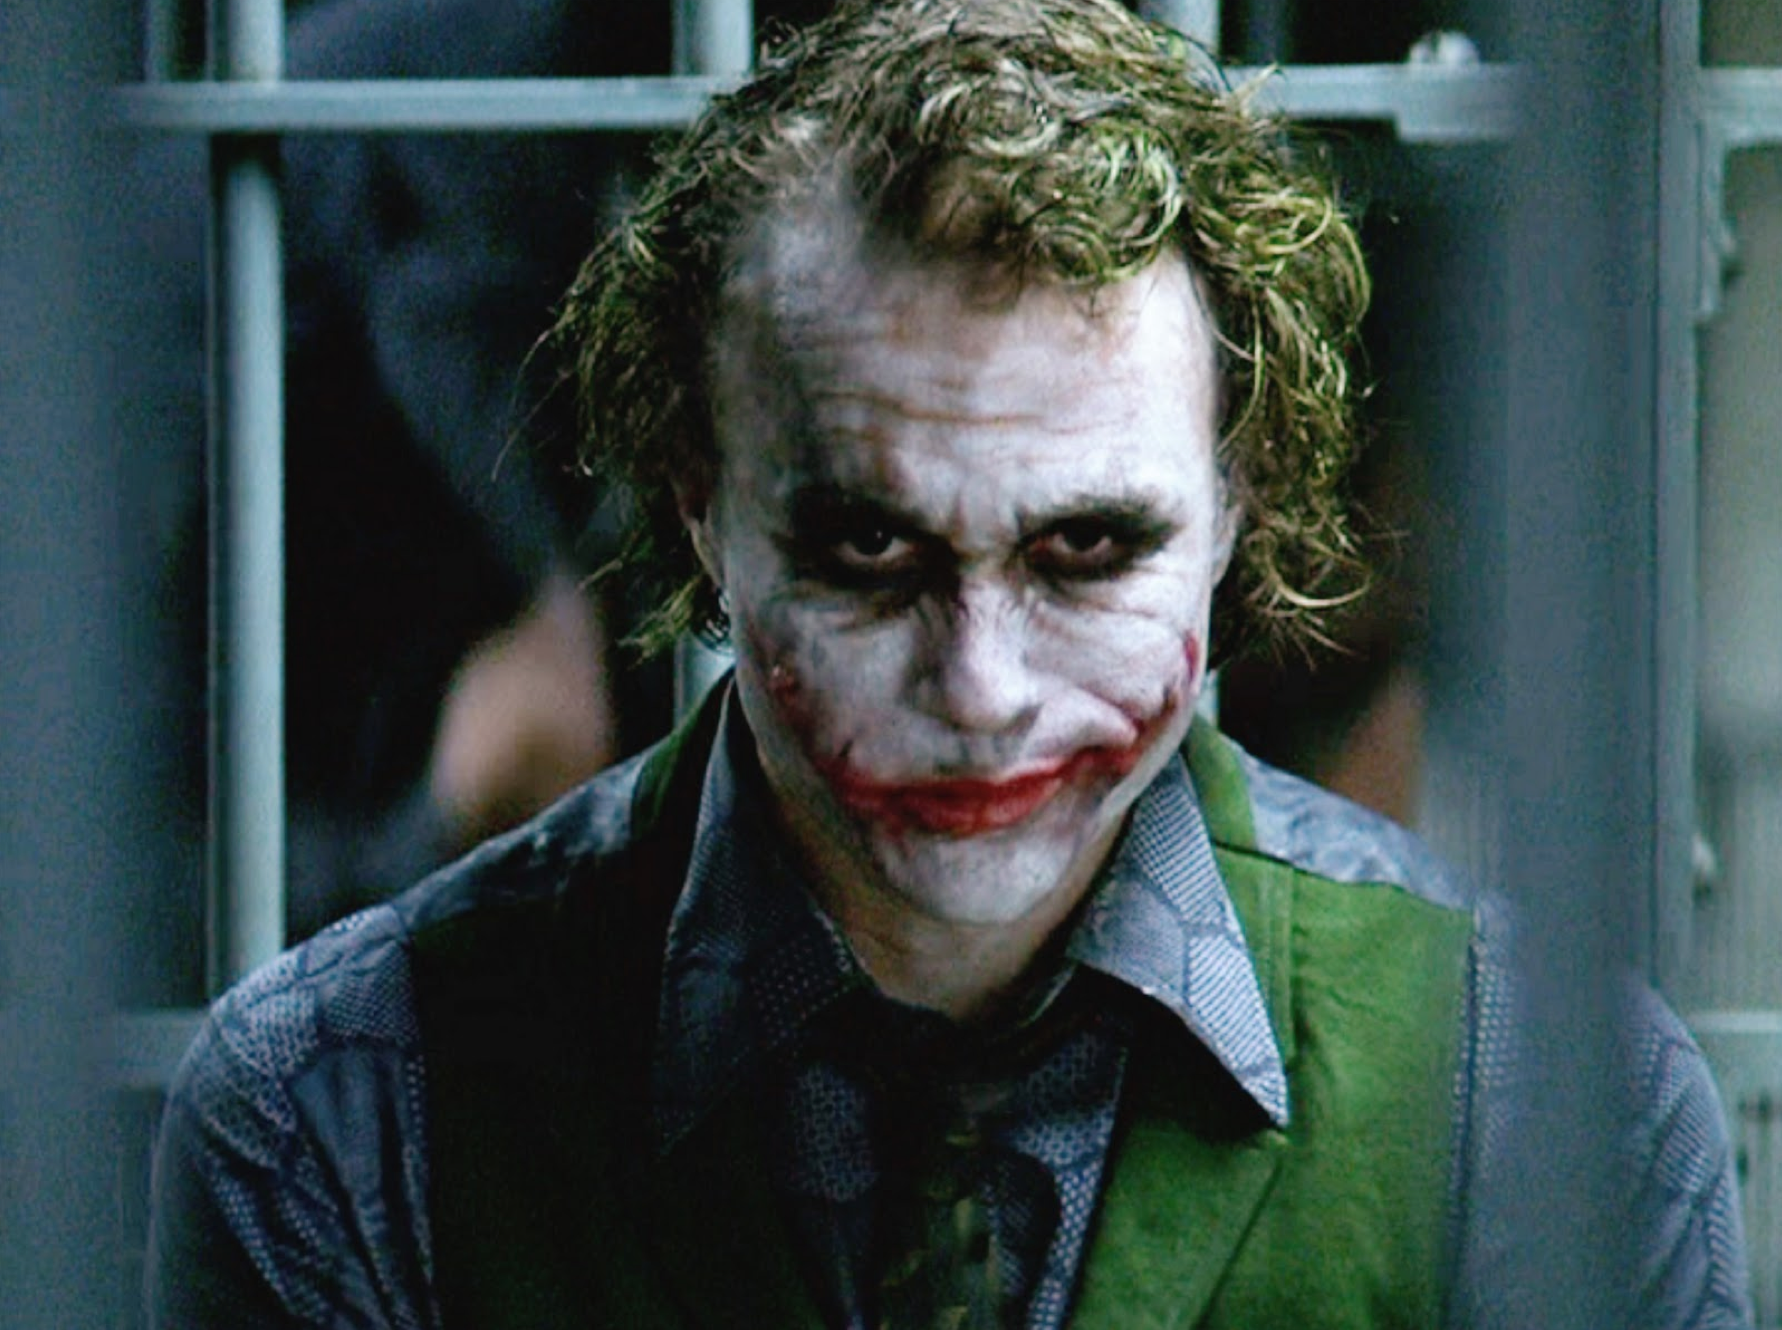 Photo of 5 Most Shocking Things The Joker Has Ever Done